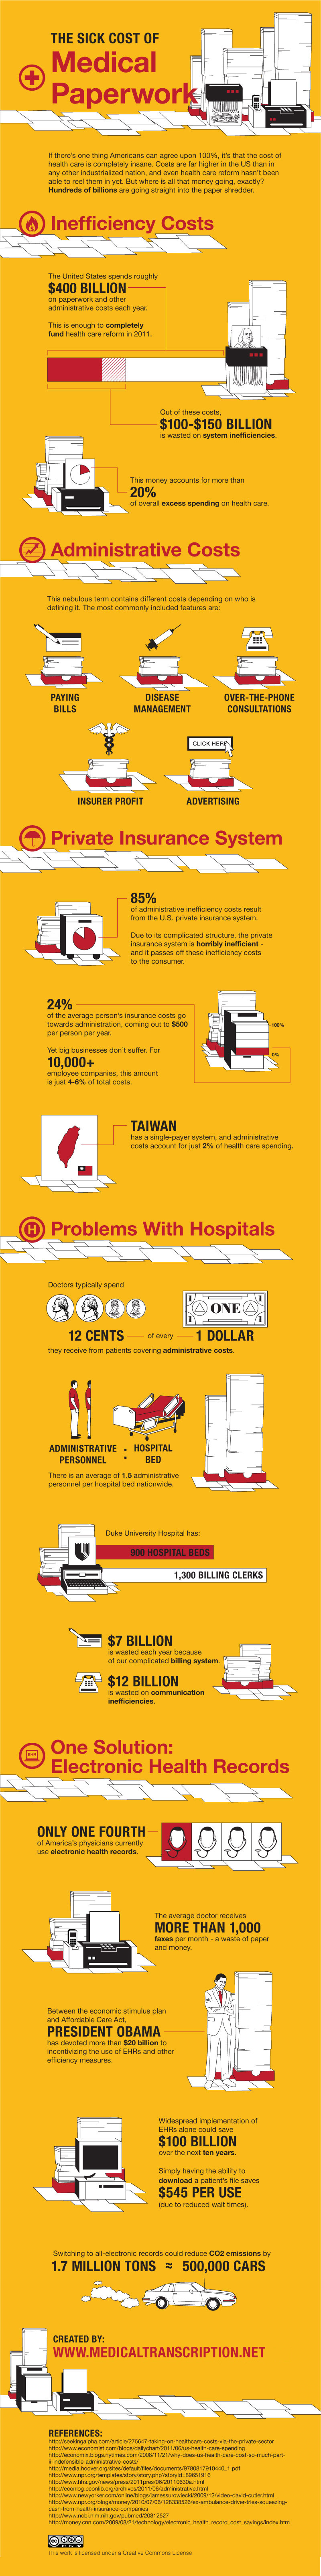 The Sick Cost of Medical Paperwork (Infographic)